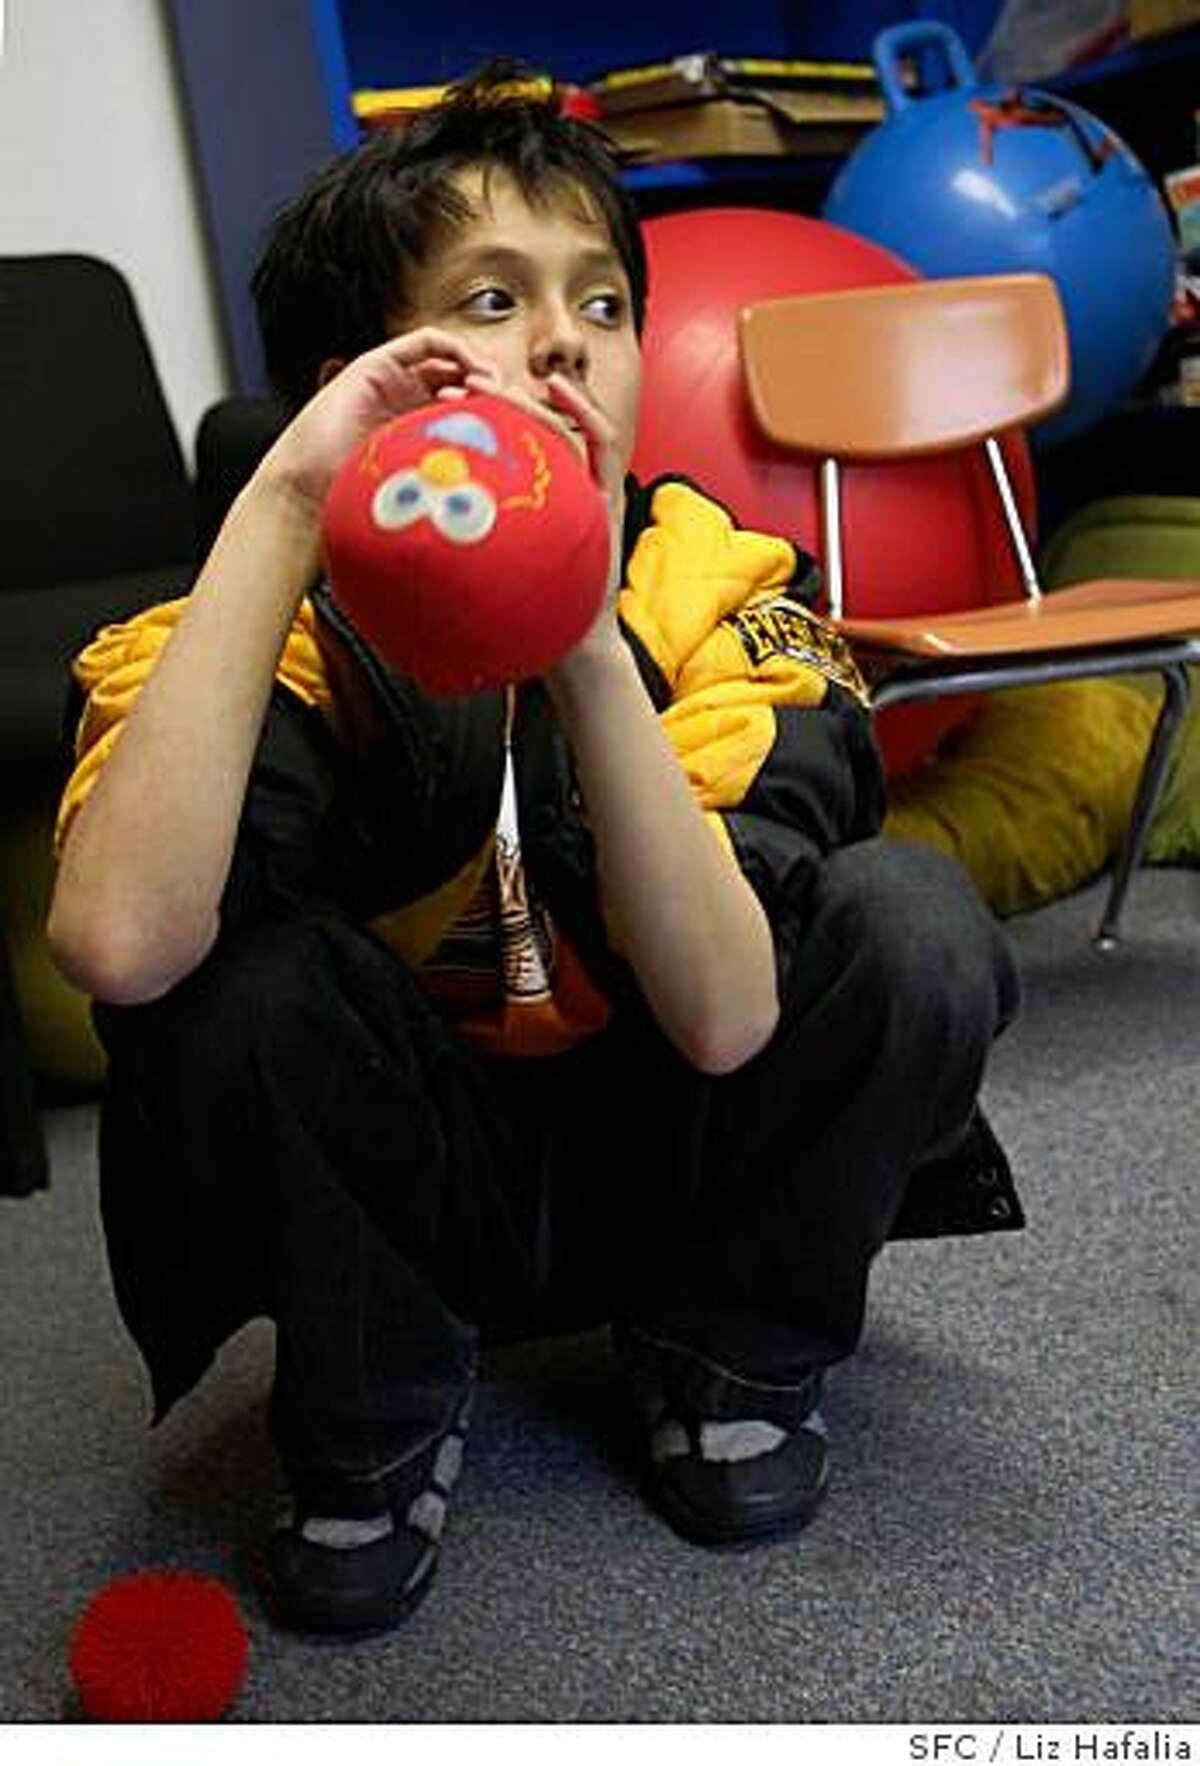 Jonah Kasoff, an 11 year old autistic child, taking a short break between lessons with his para professional at Yick Wo elementary school in San Francisco, CA, on Monday, Feb.25, 2008. There is a rise in autistic children in California schools. Photo by Liz Hafalia/San Francisco Chronicle